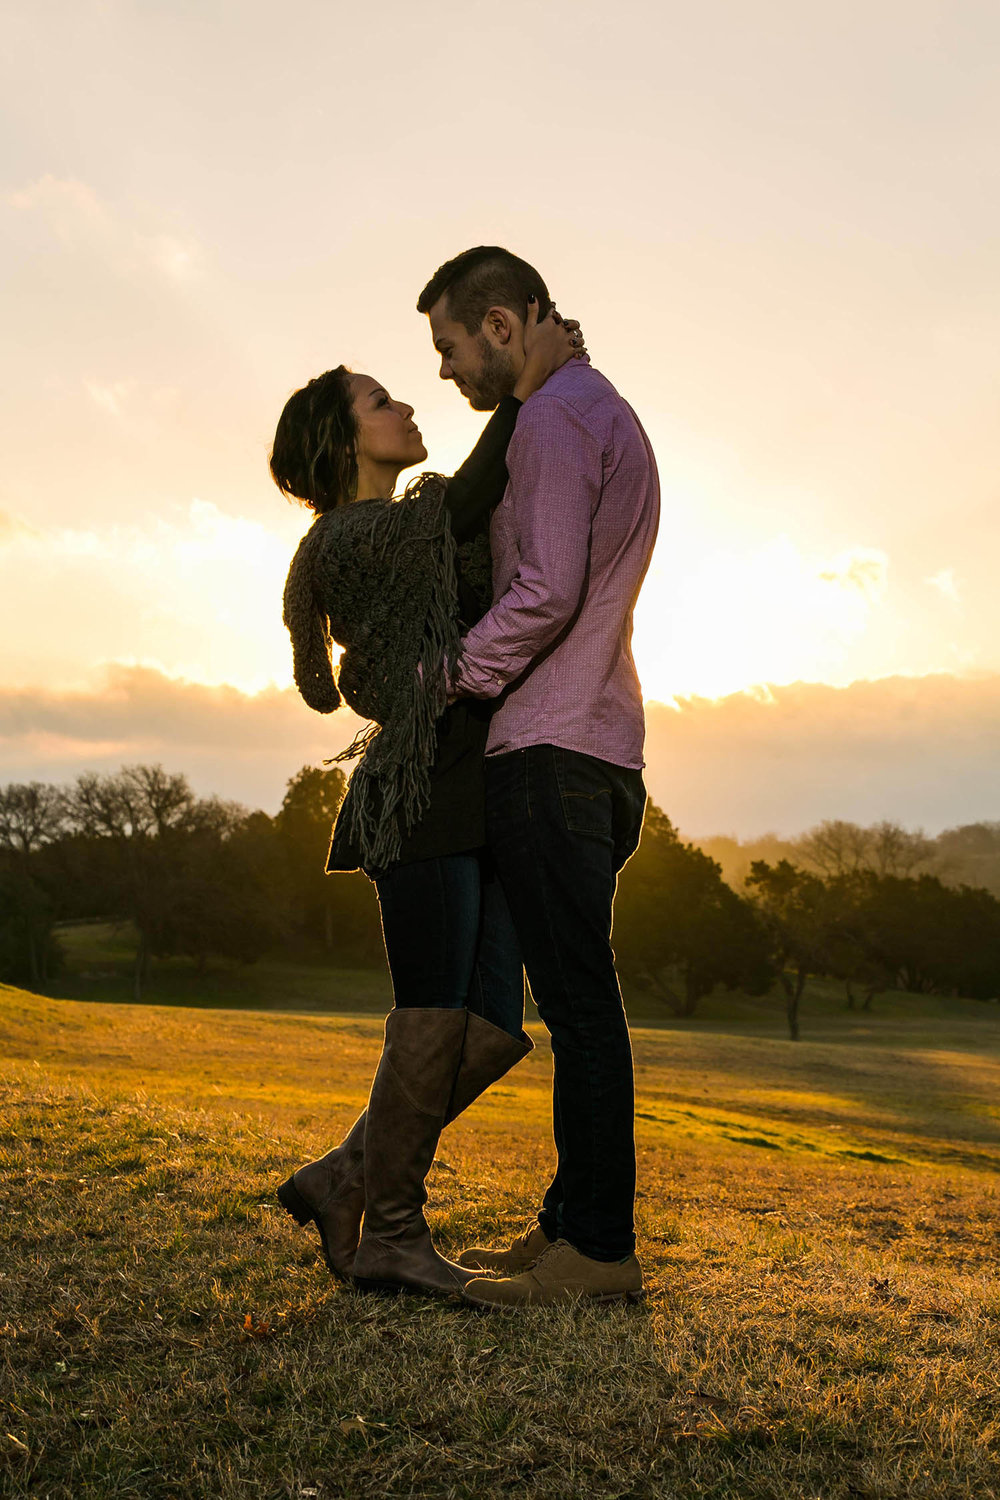 sunrise-engagement-shoot.jpg